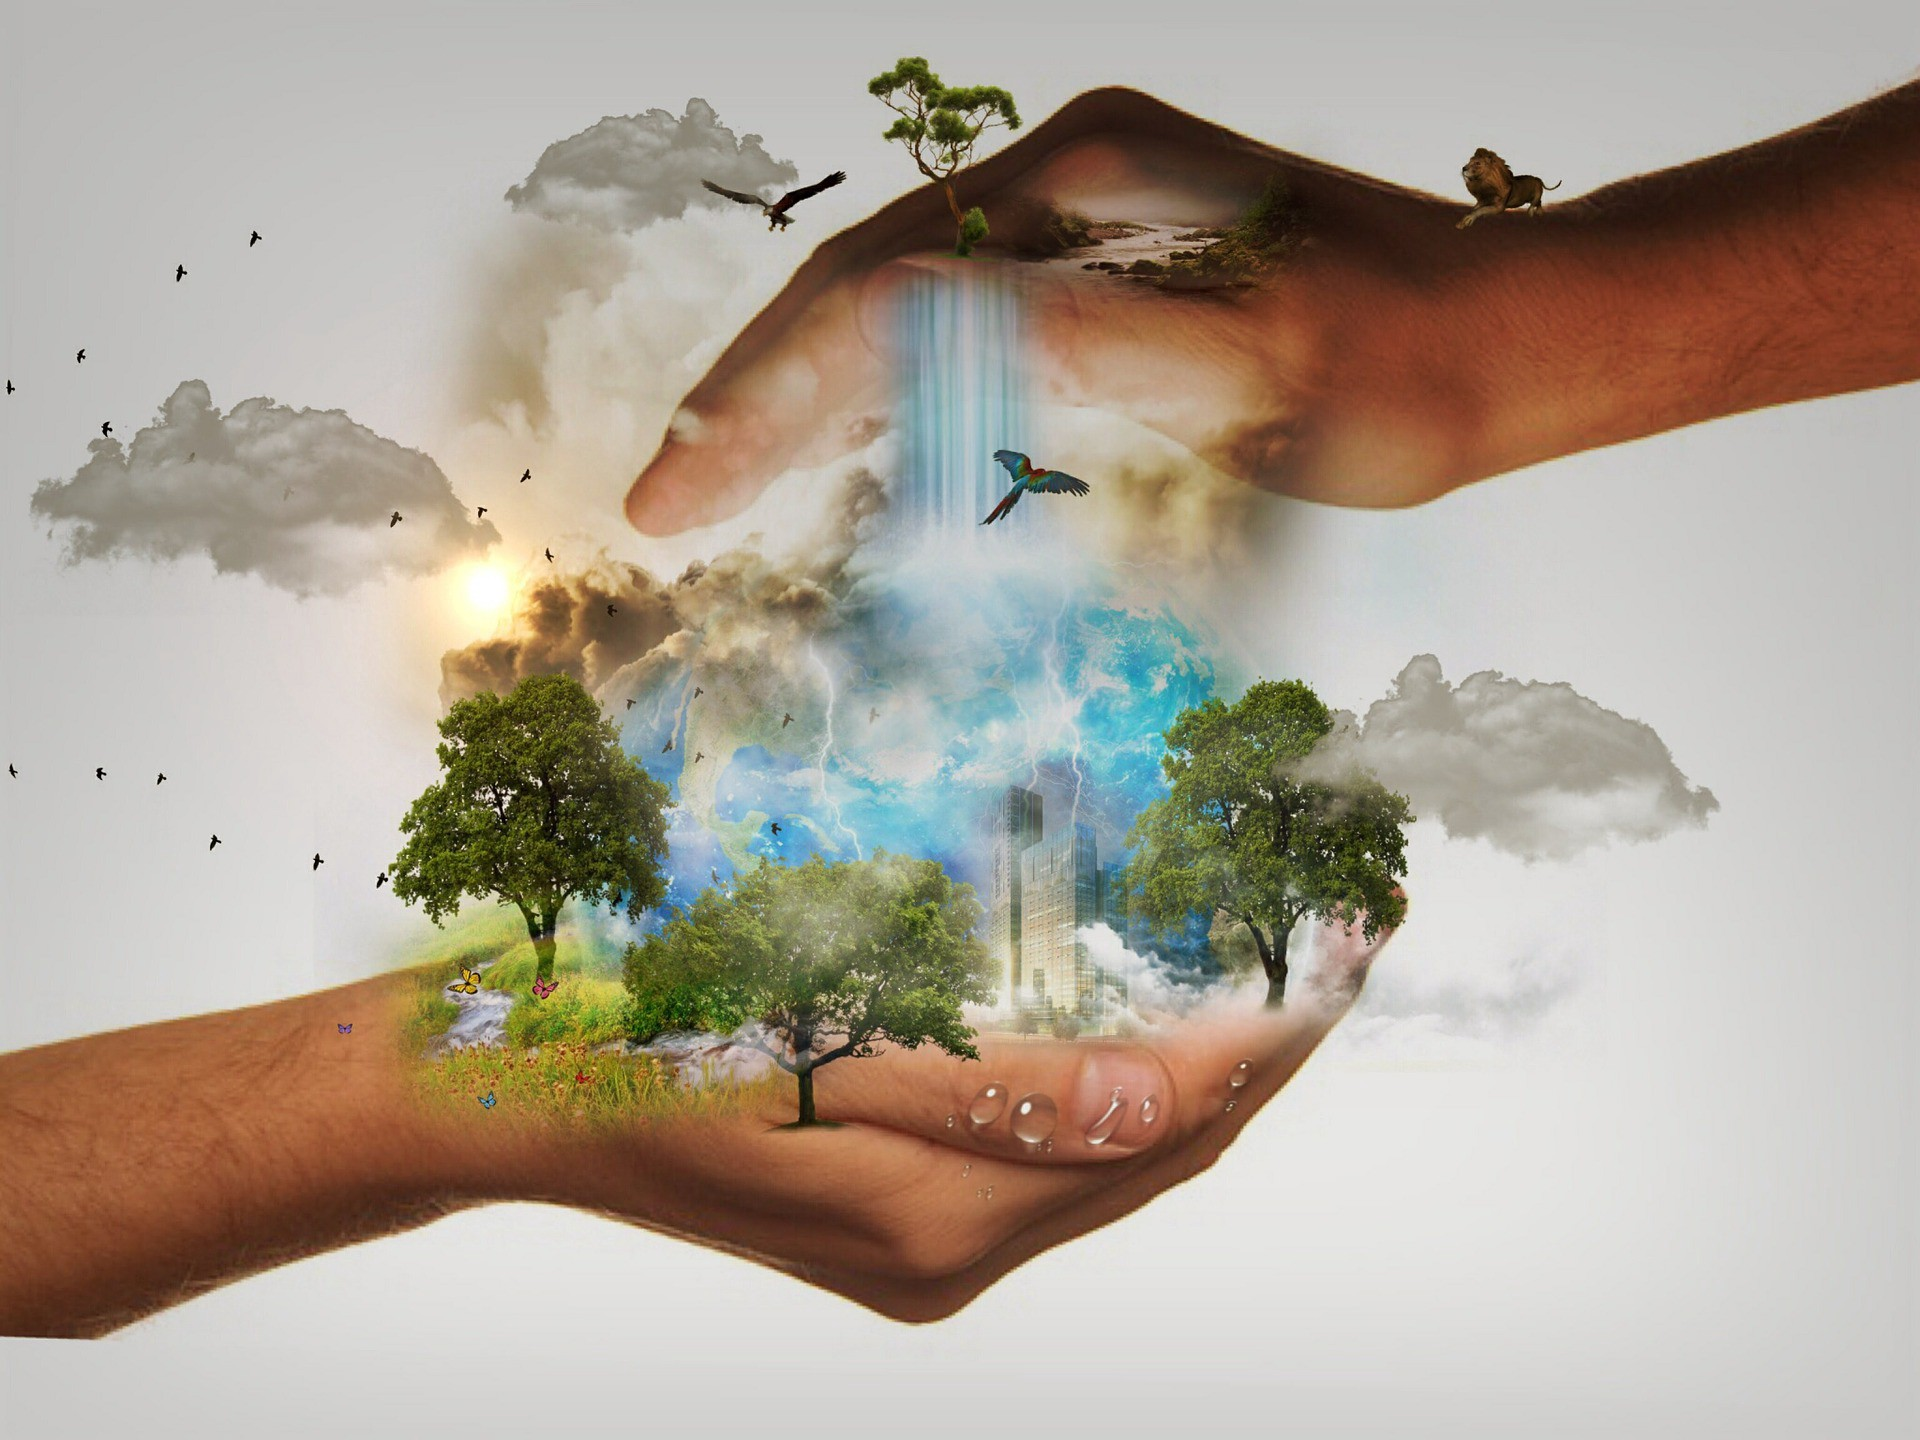 Two hands enveloping a city surrounded by trees, with lightening storm.